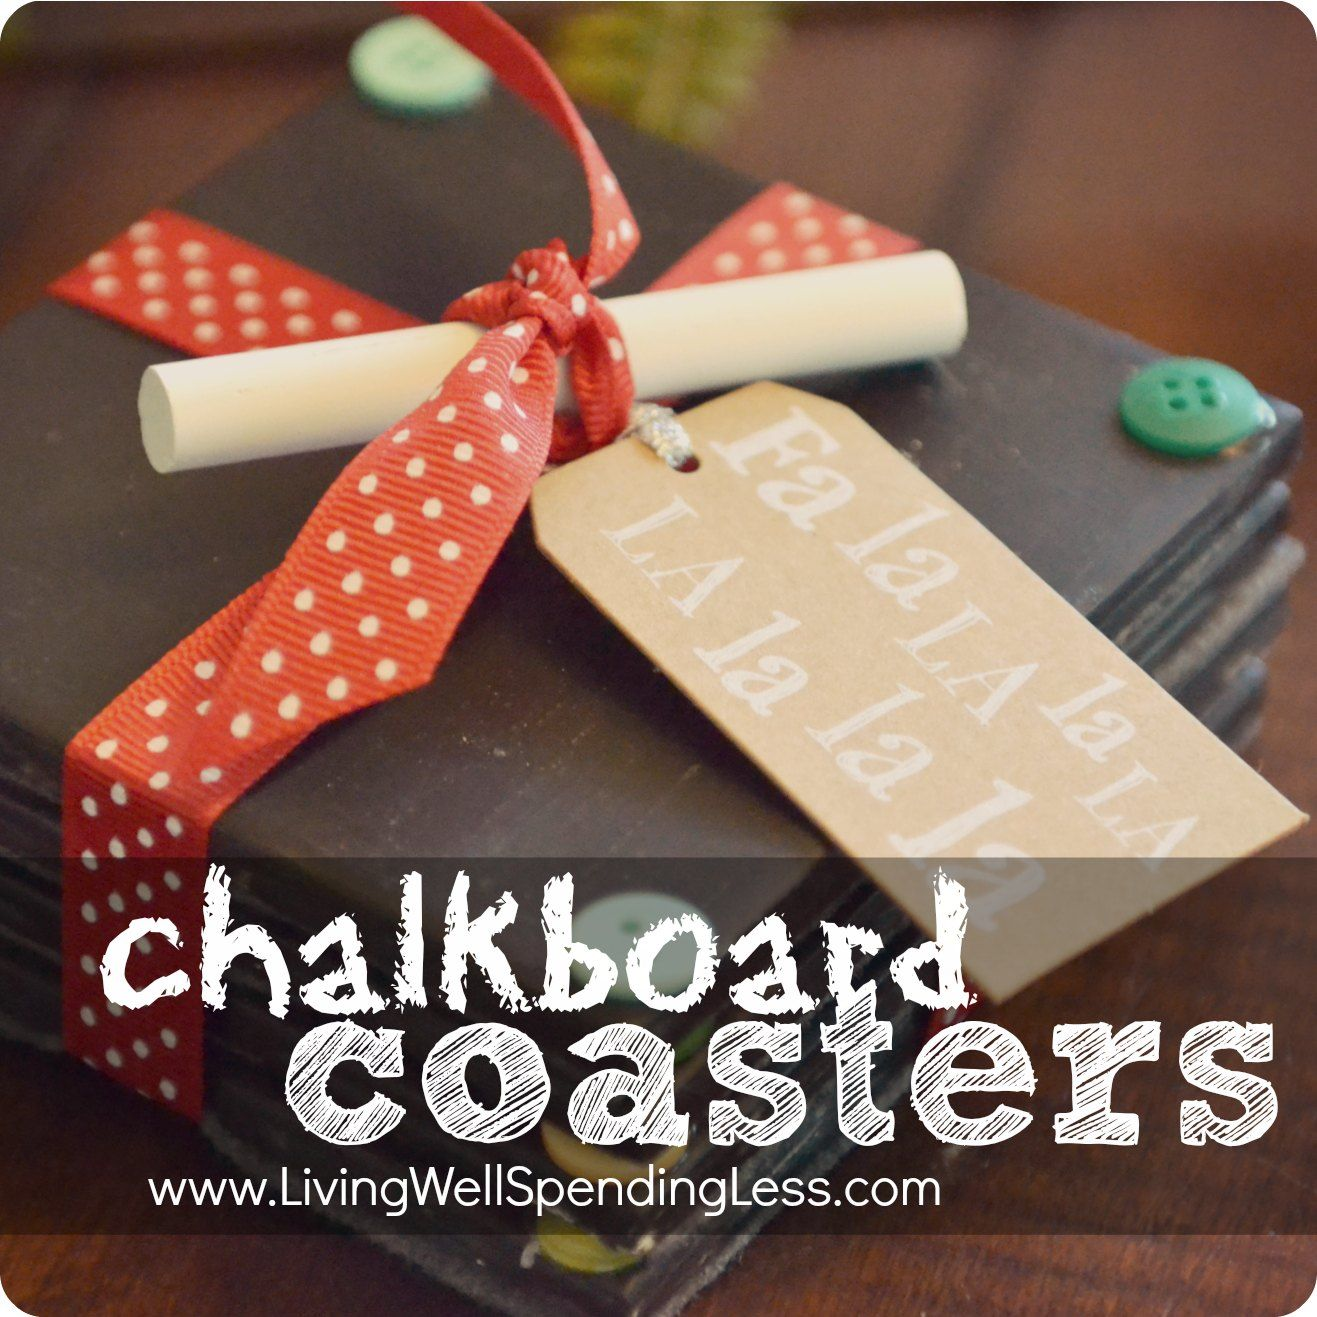 Diy chalkboard coasters diy chalkboard chalkboards and coasters diy chalkboard coasters handmade and homemade christmas gift idea solutioingenieria Choice Image